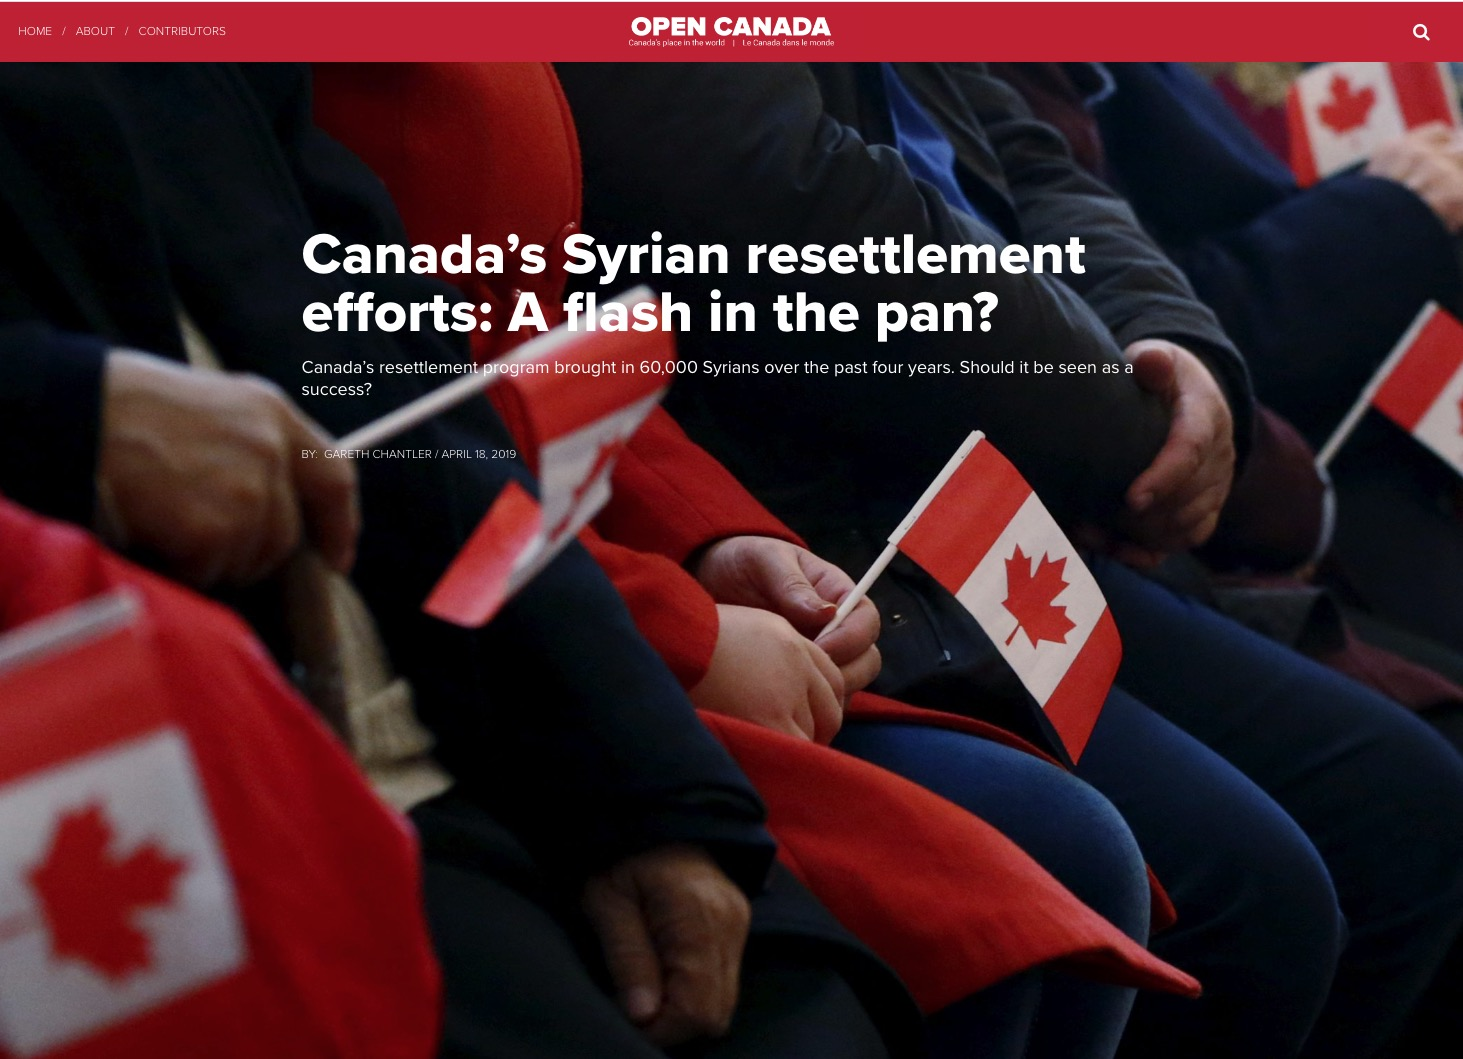 Jacqueline Swaisland – Canada's Syrian resettlement efforts: A flash in the pan?